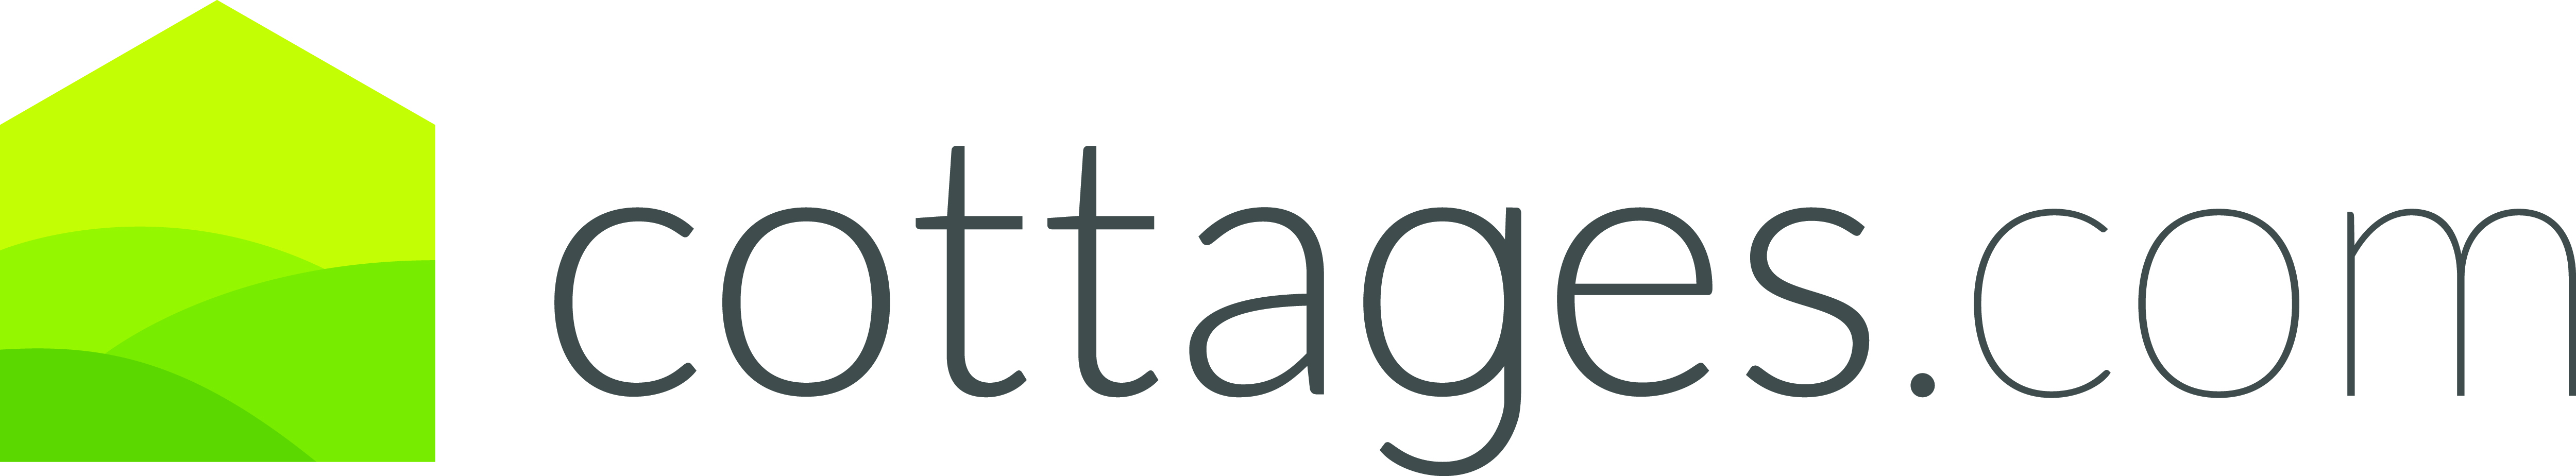 Cottages-Logo.jpg